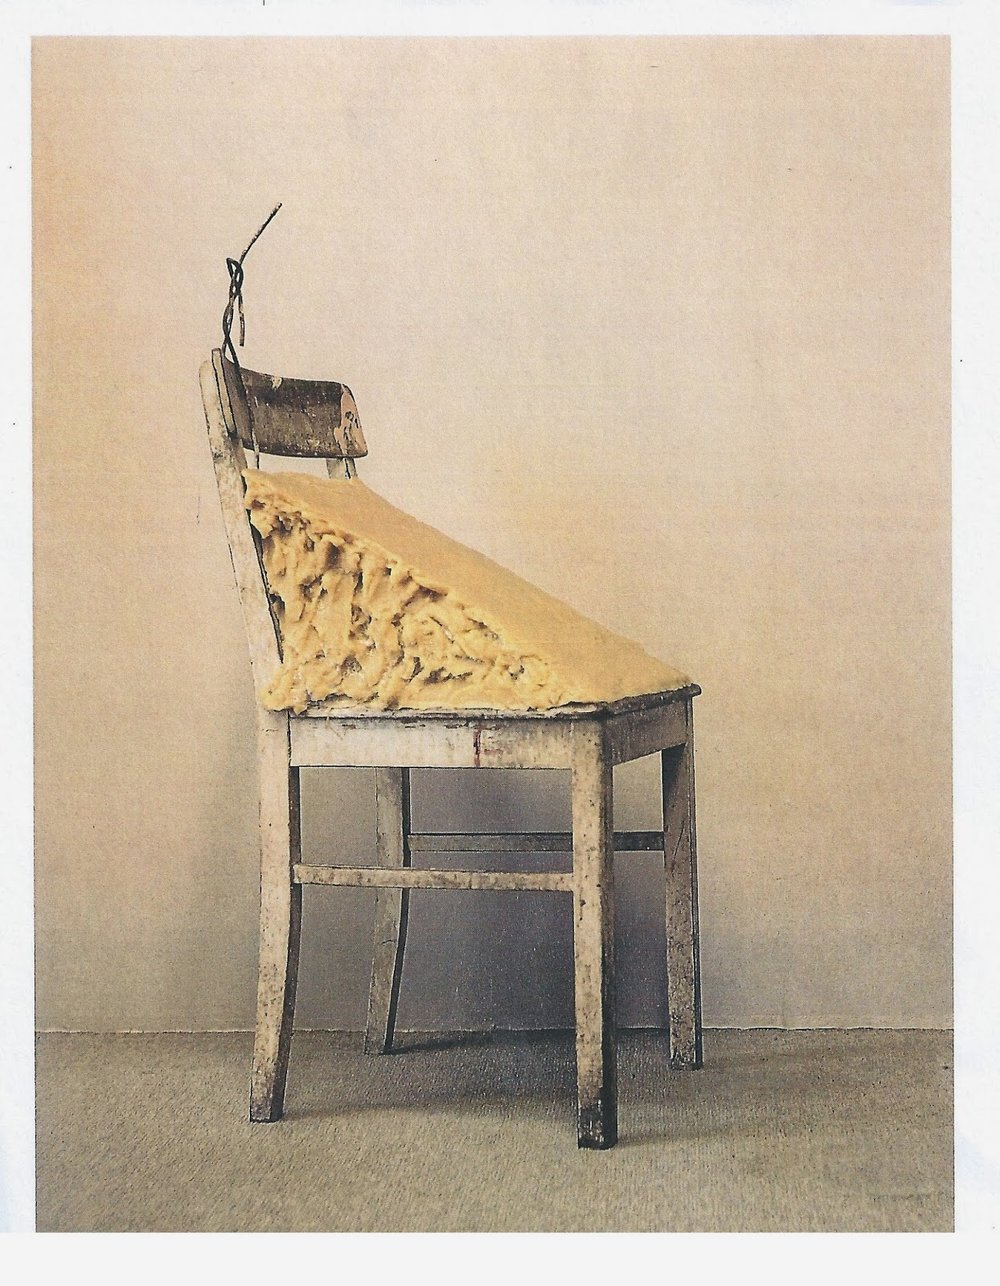 'Fat Chair', Joseph Beuys, 1964.